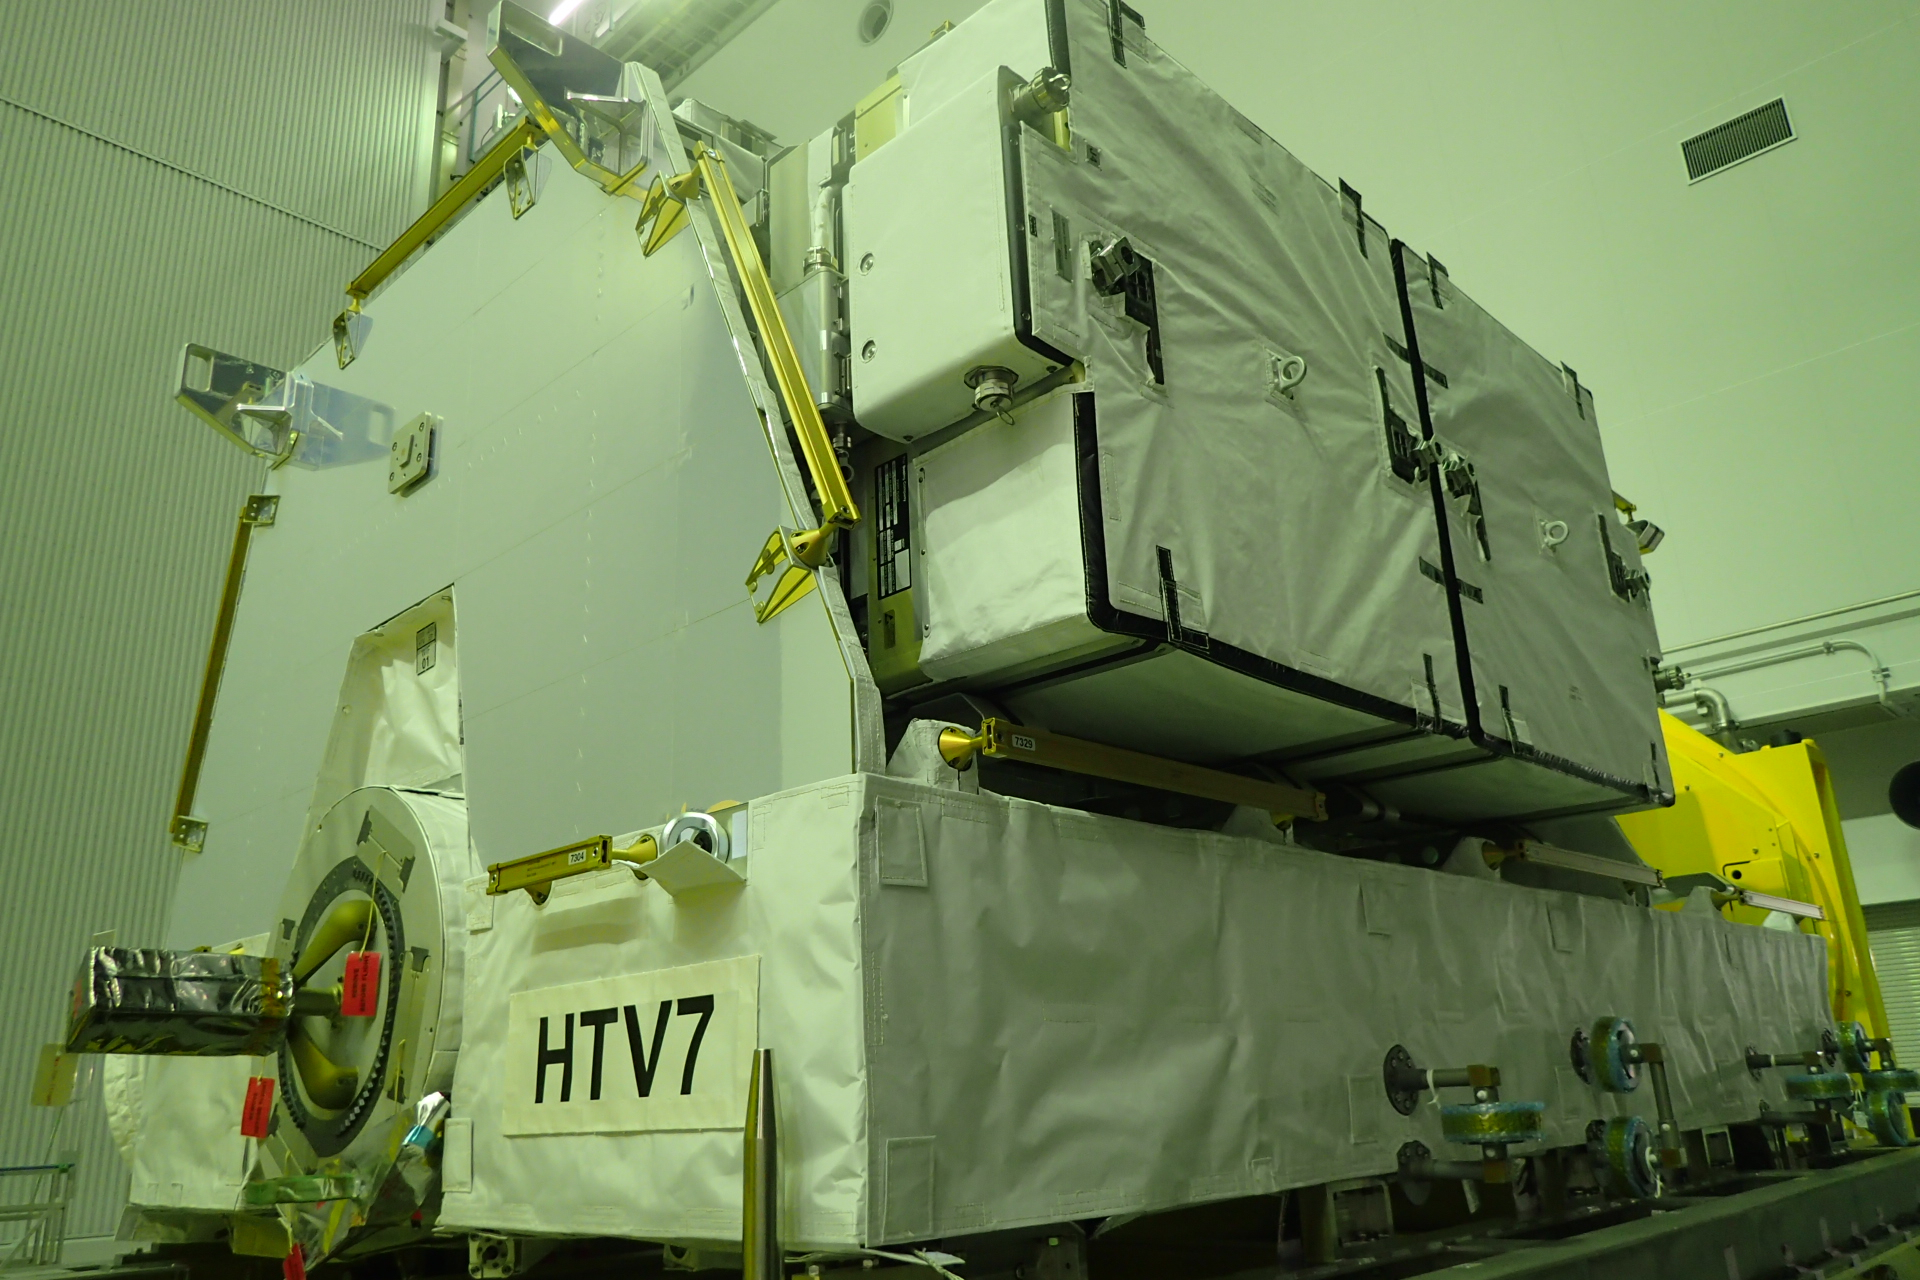 The six lithium-ion batteries installed on the Exposed Pallet. Credit: JAXA